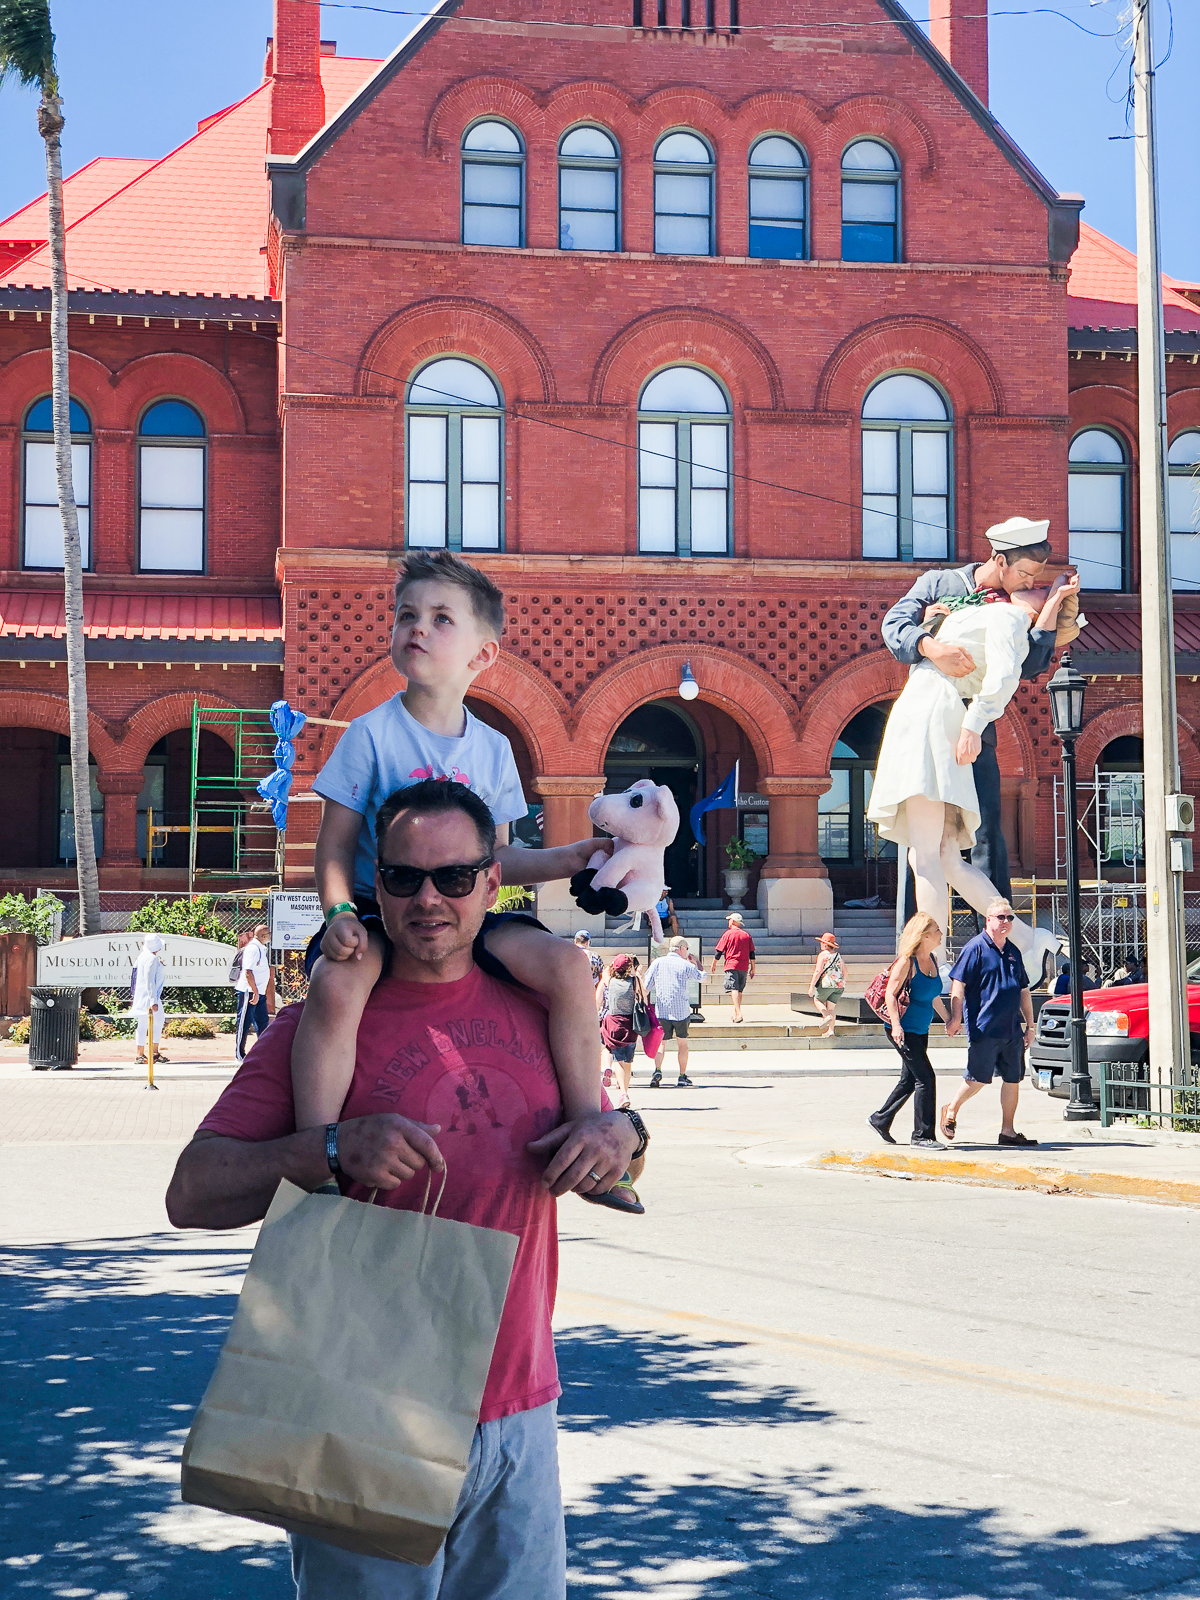 Key West - Things to Do in Key West - Misty Nelson, family travel blogger @frostedevents